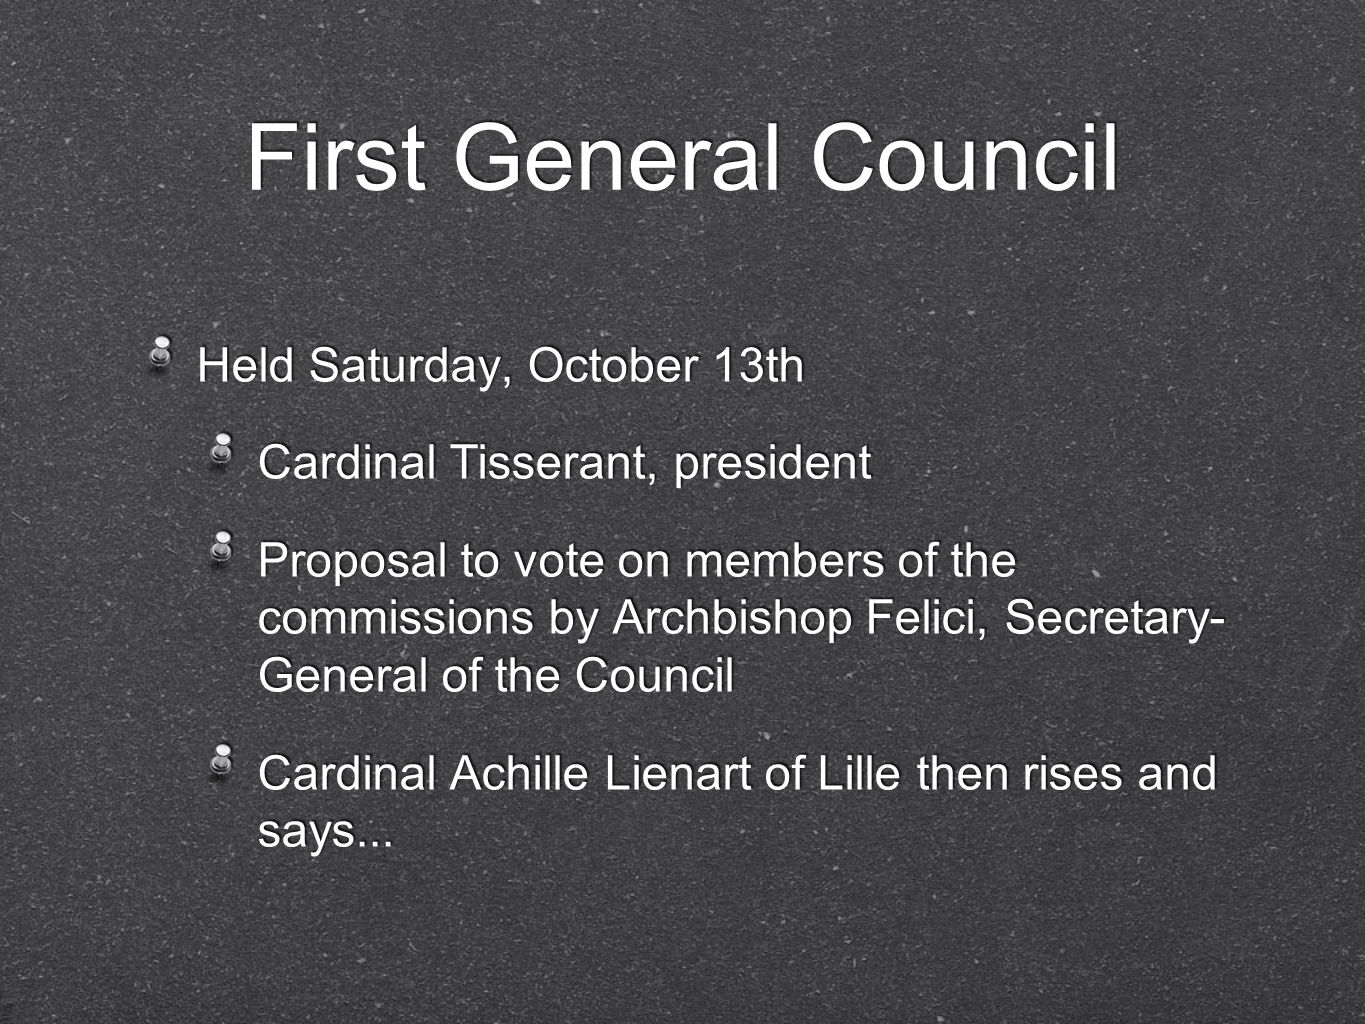 First General Council Held Saturday, October 13th